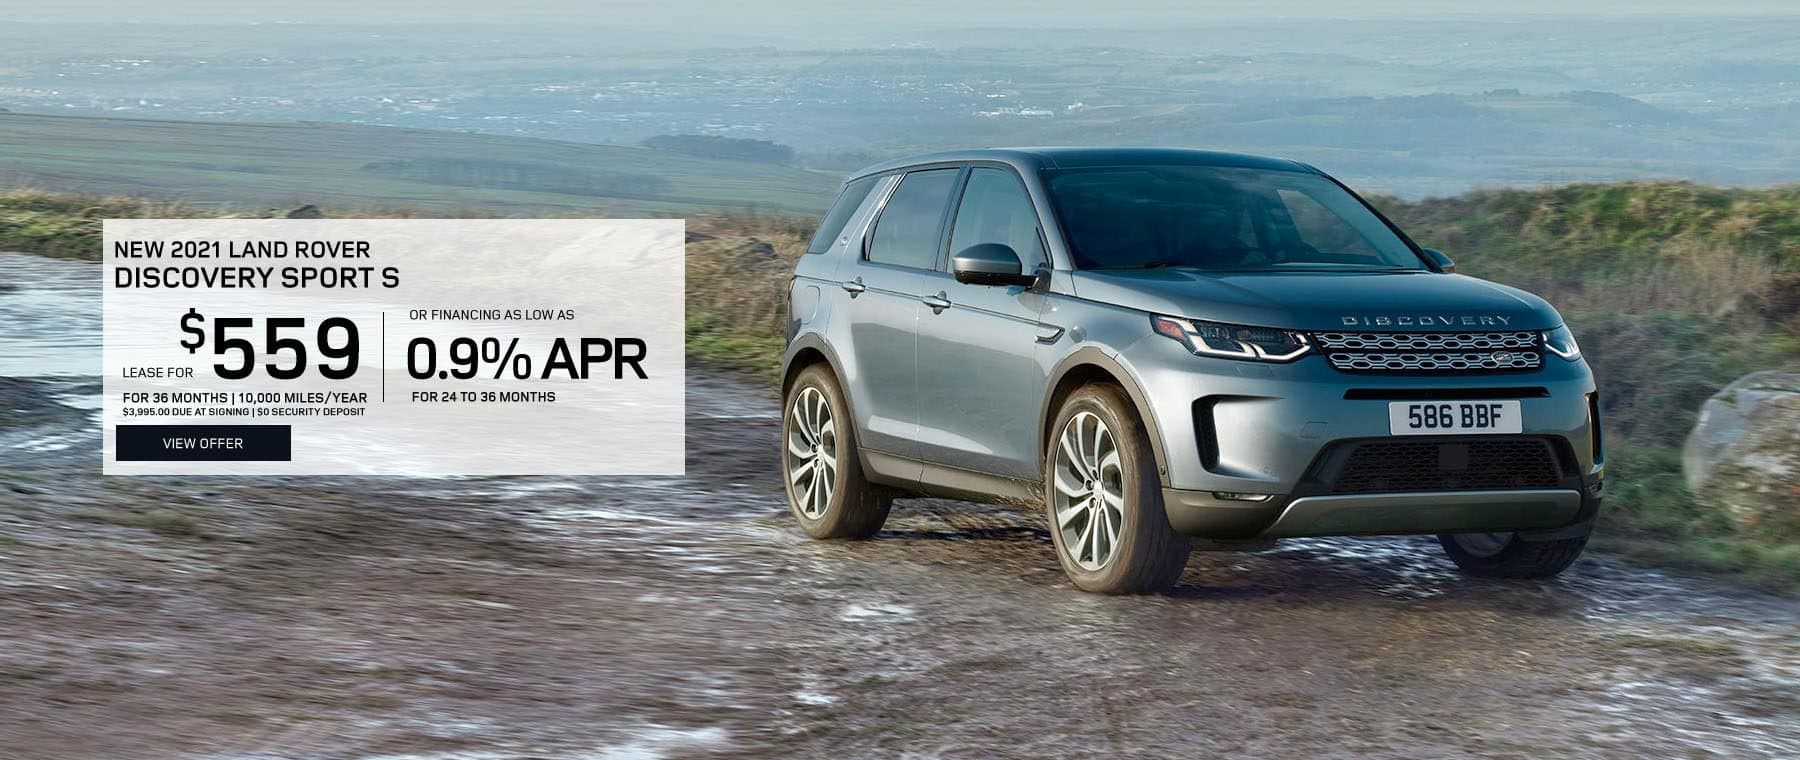 22-discovery-sport-oct-2021